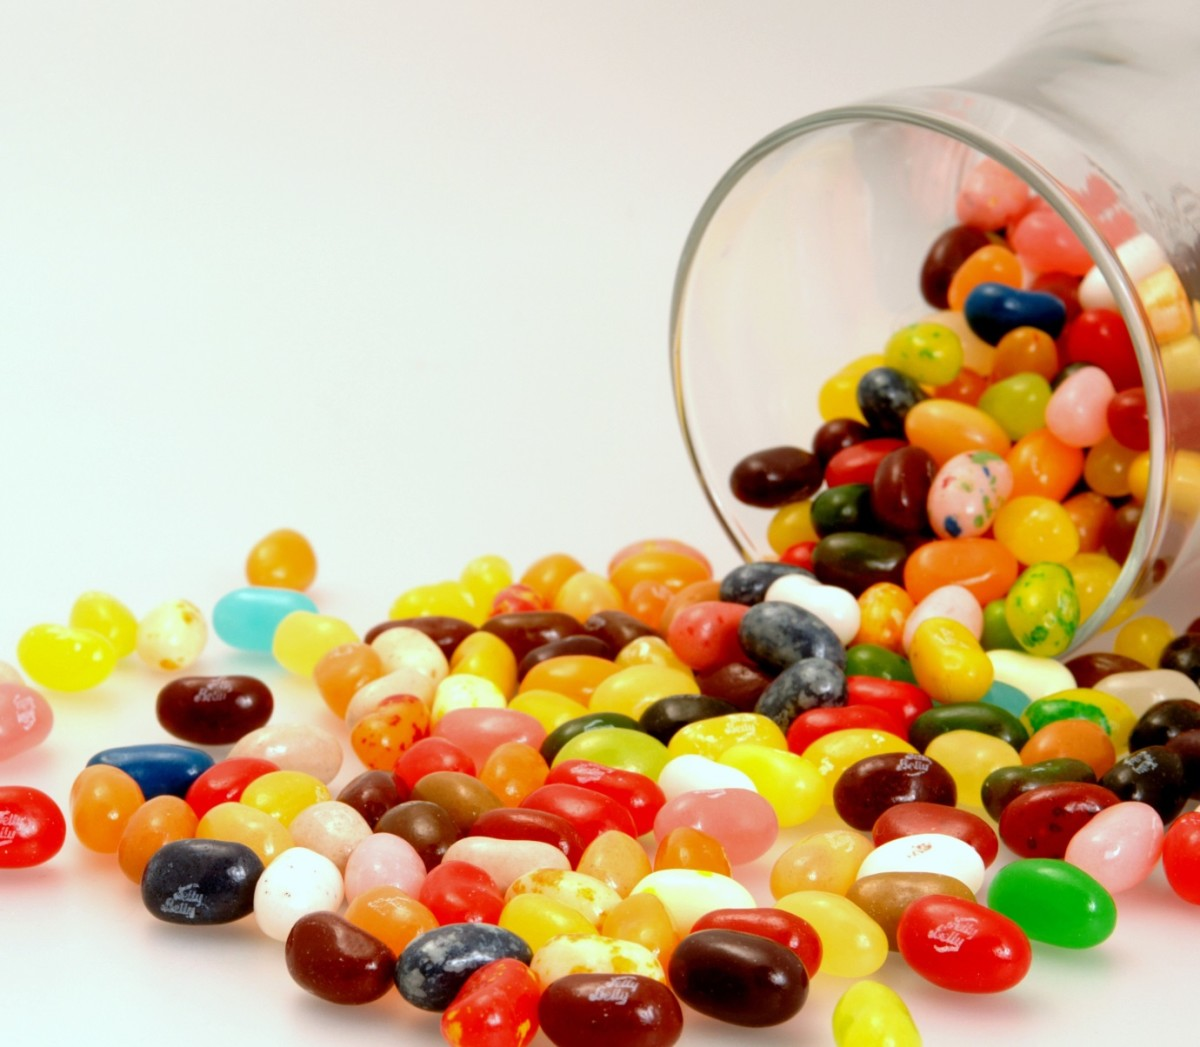 fun-facts-about-jelly-beans